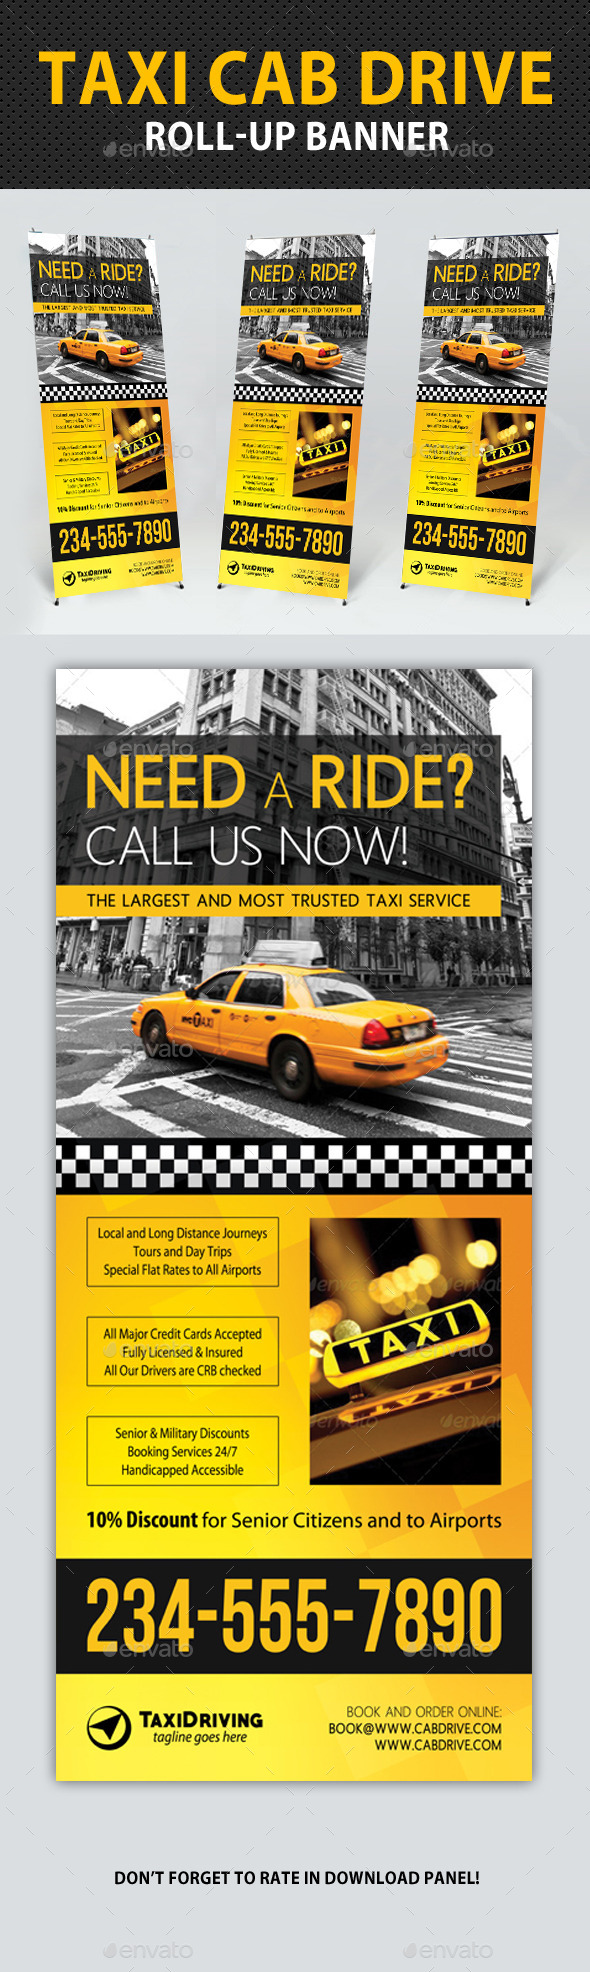 GraphicRiver Taxi Cab Drive Roll-Up Banner V2 11167828